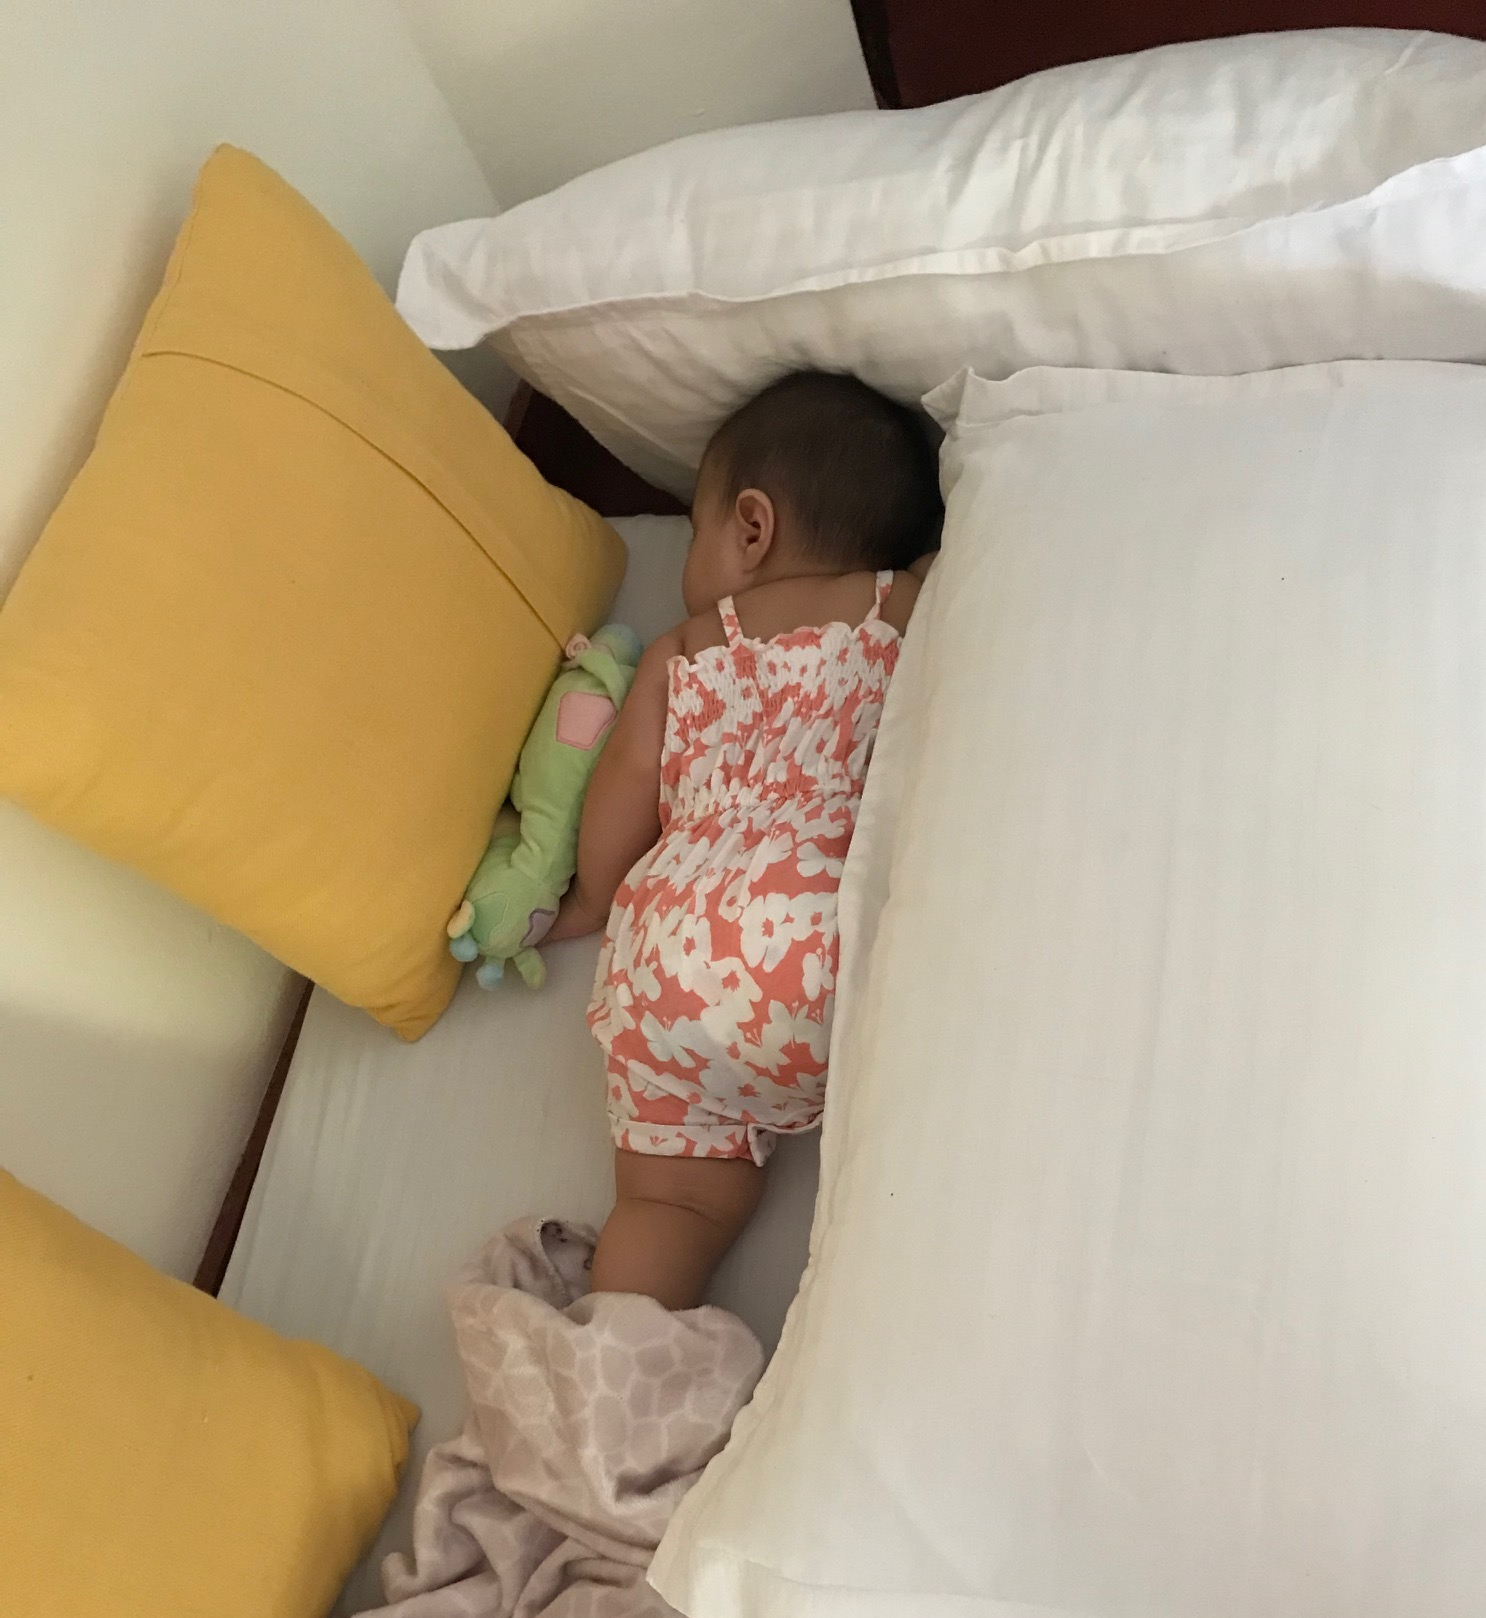 With no crib available at a home stay in Kerala, a floor mattress and pillows kept my daughter comfortable